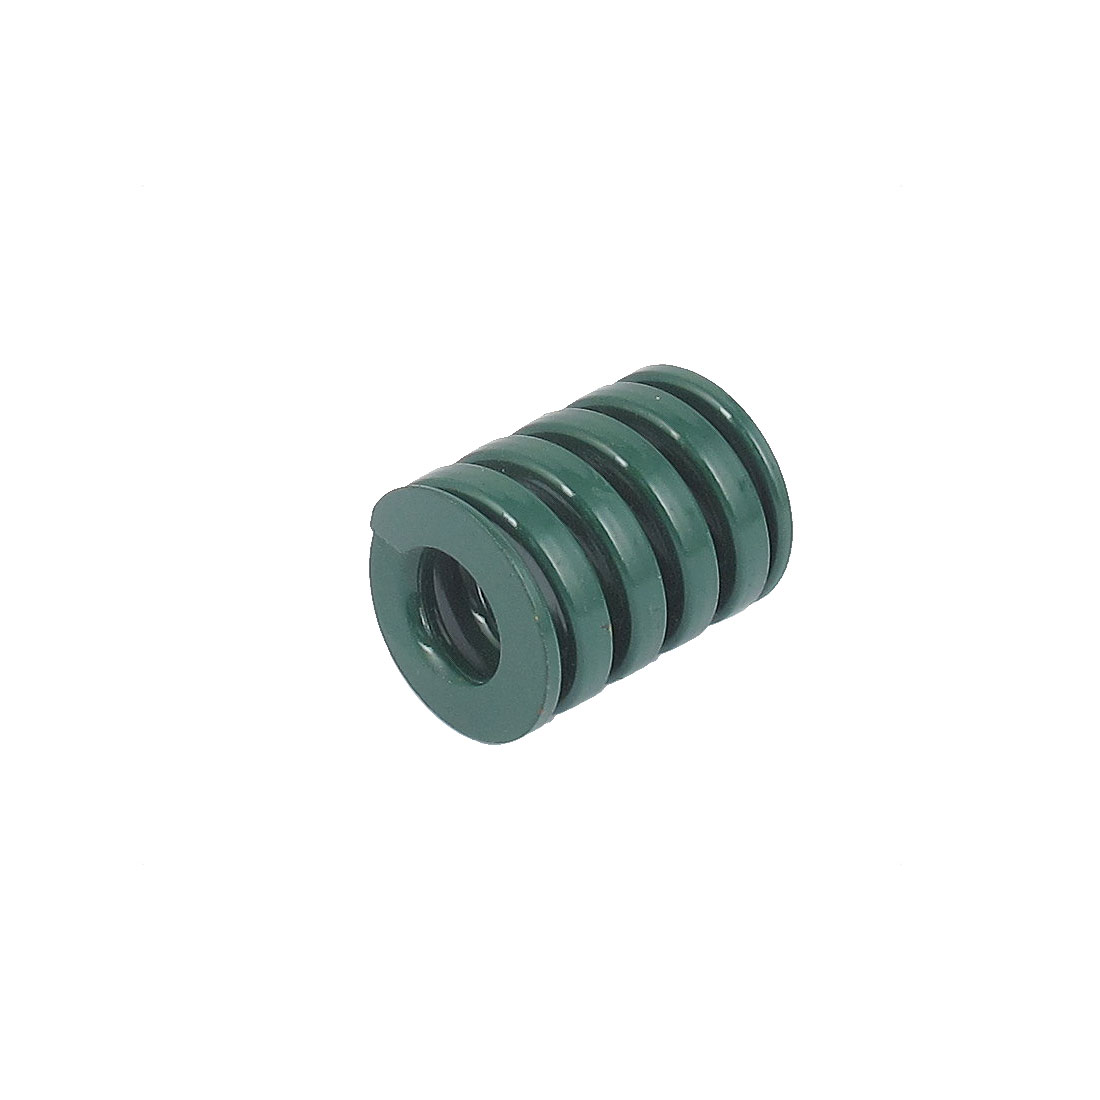 20mmx25mm Chromium Alloy Steel Heavy Load Die Spring Green